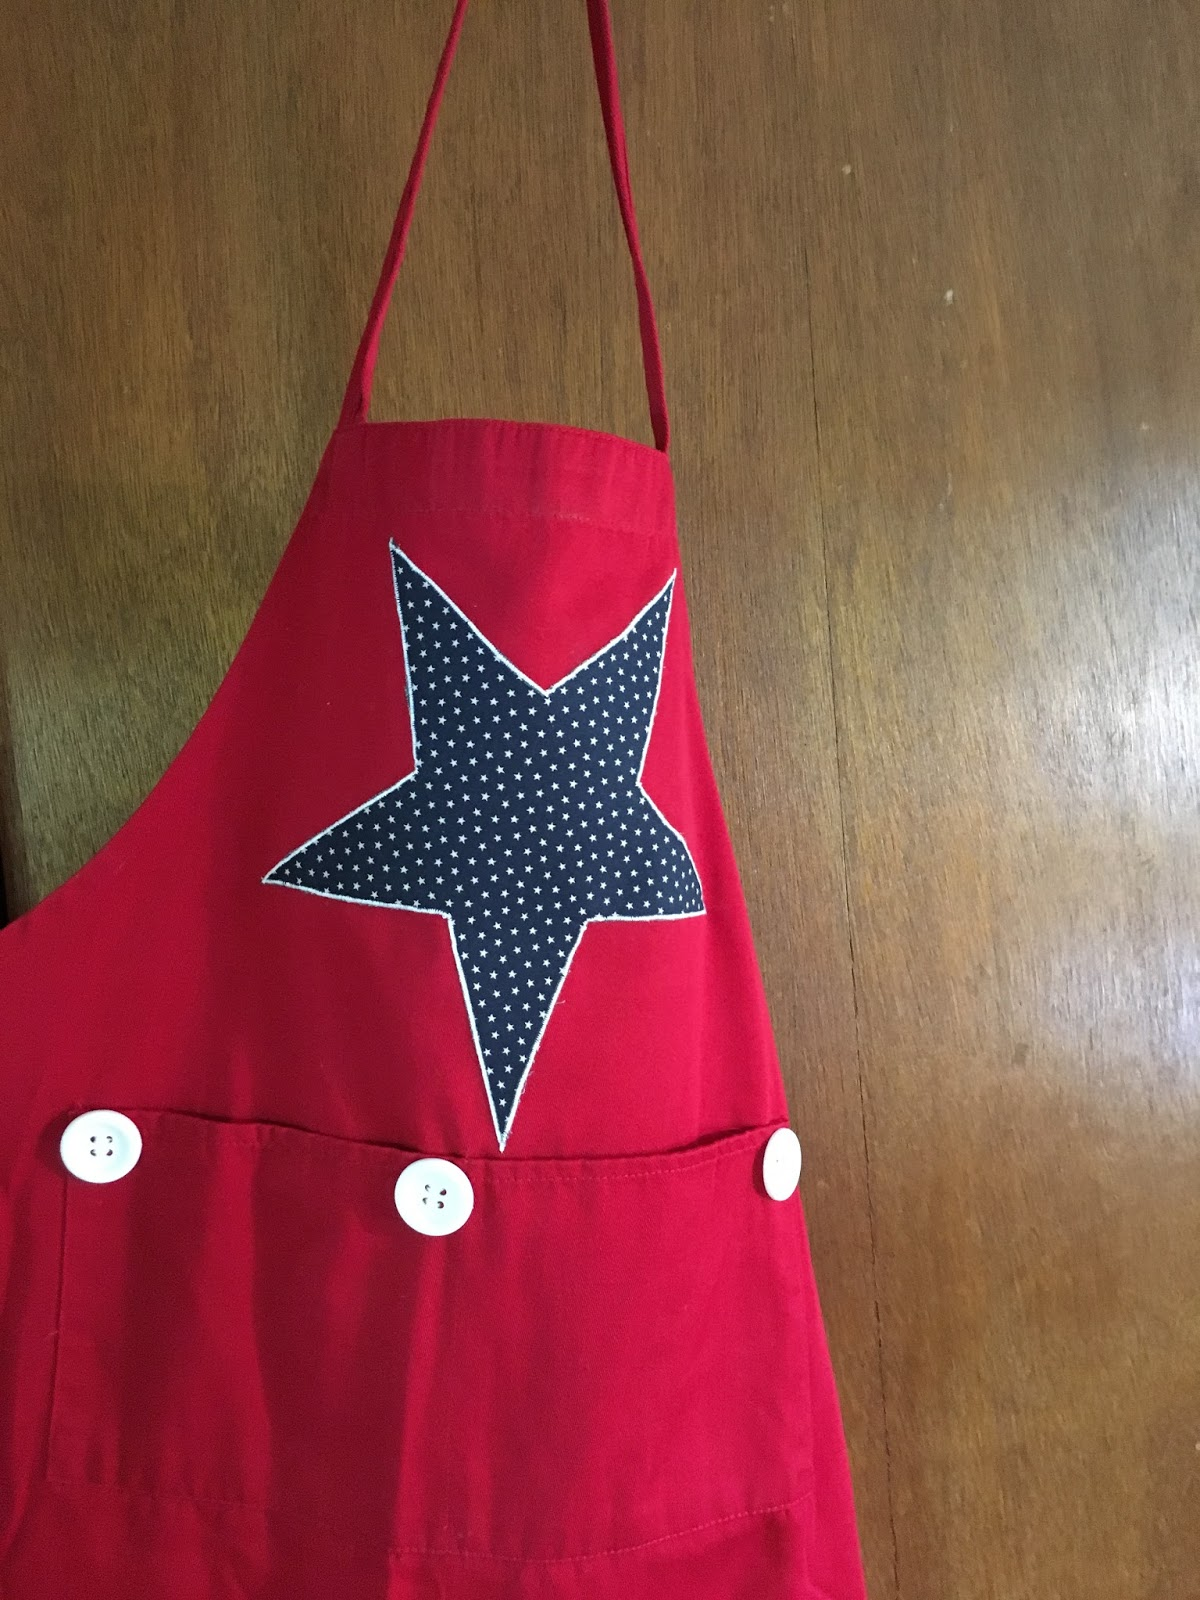 White apron hobby lobby - These Weren T Pressed Yet But I Think They Re Pretty Cute And Will Be A Big Hit